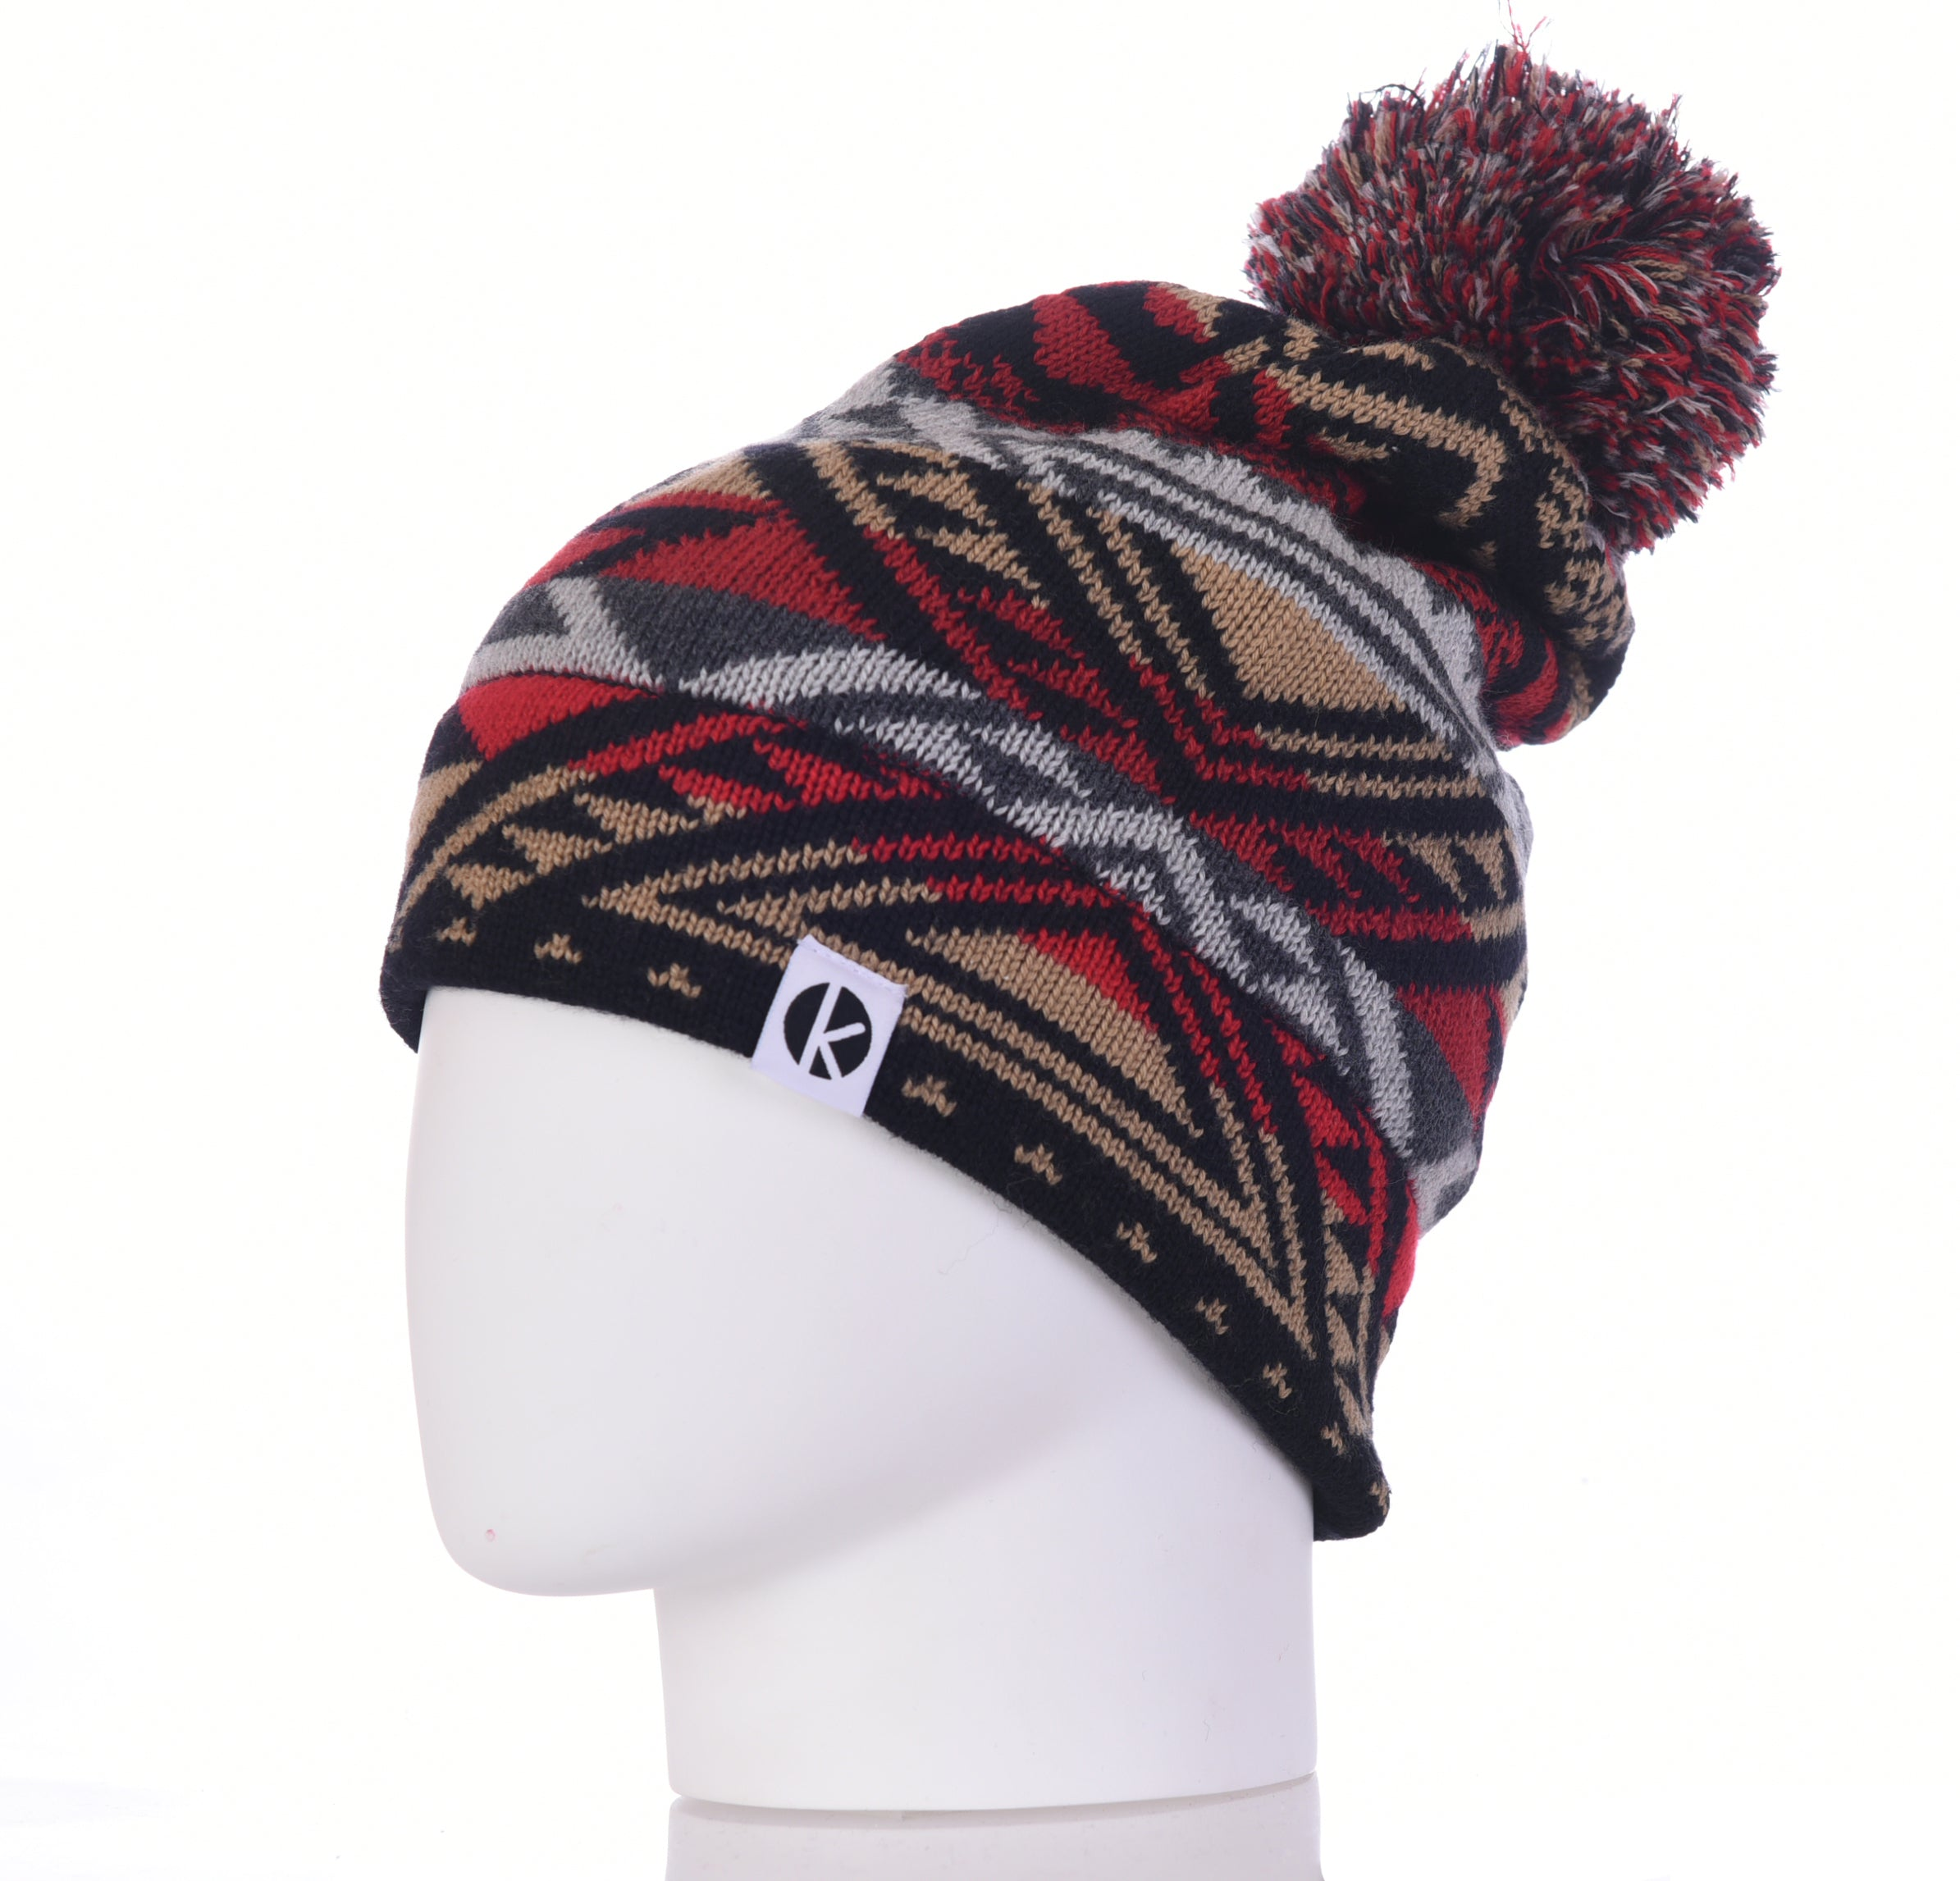 Nava Say Nava Merino Wool Bobble Beanie - Black